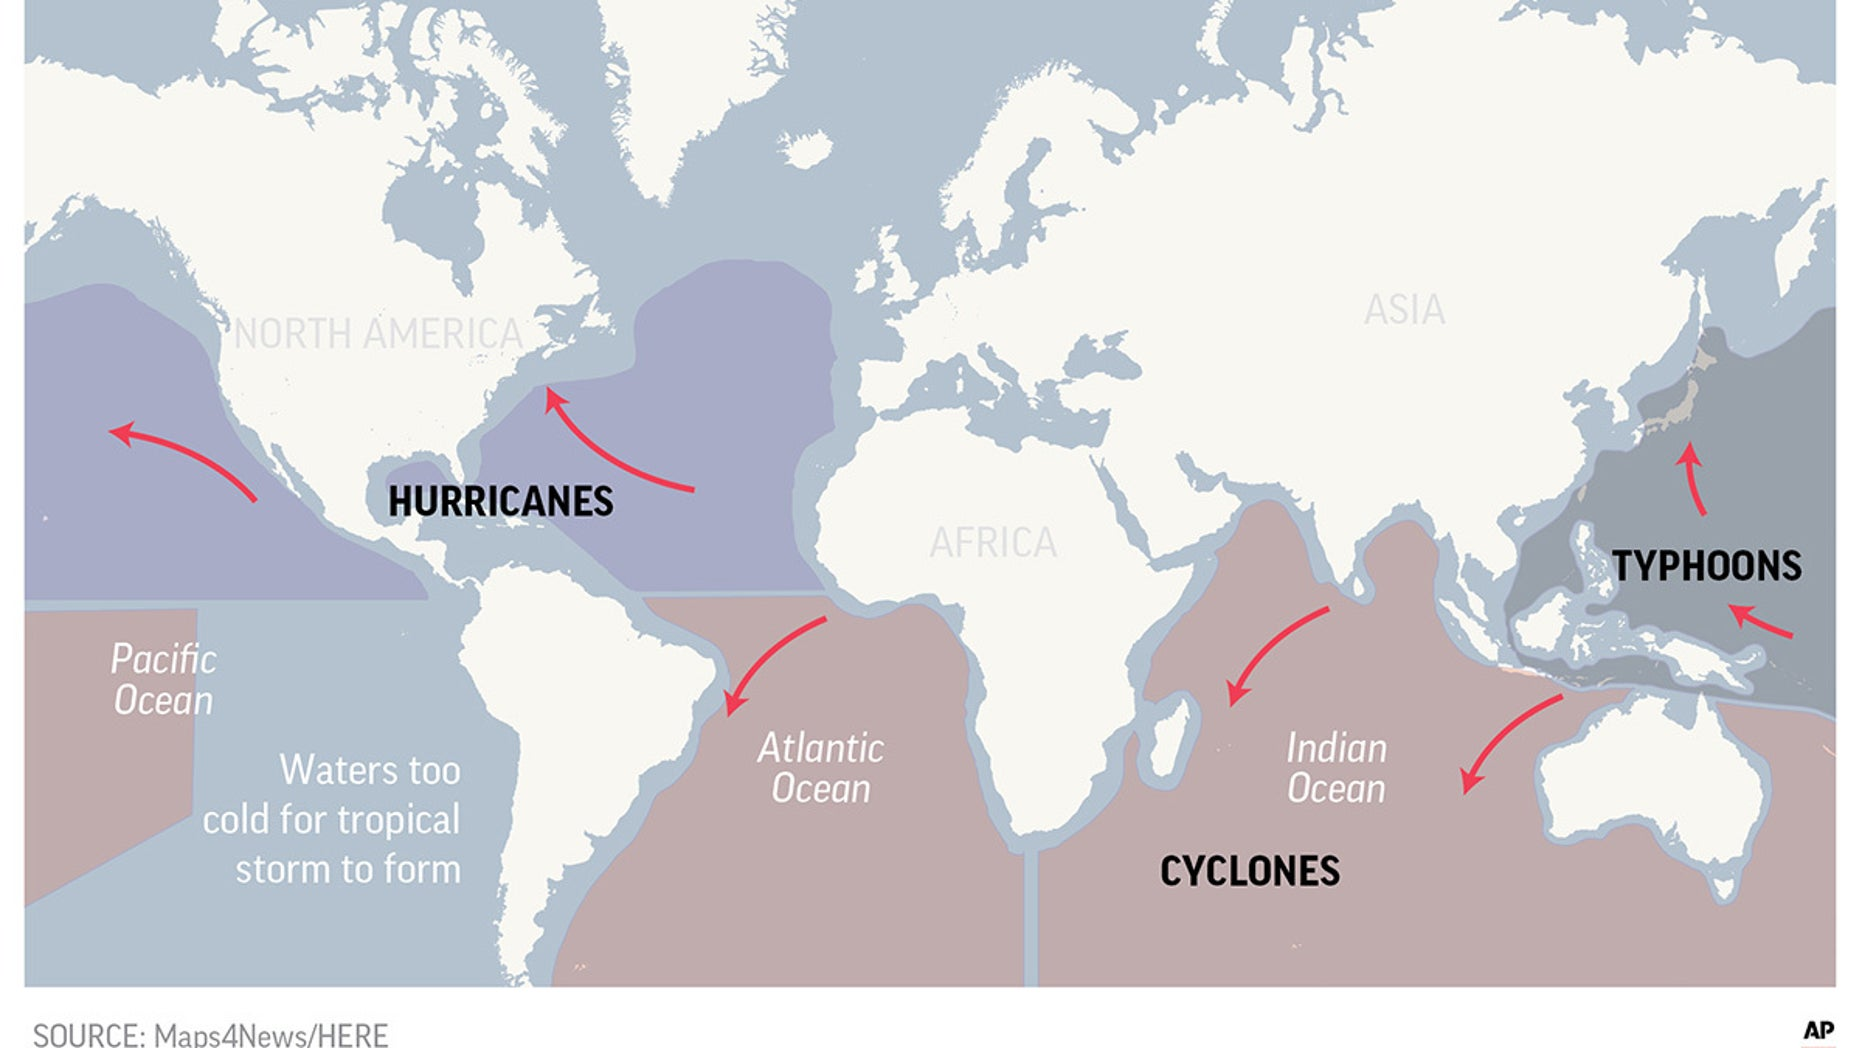 Hurricanes World Map.Us Hurricane Asian Typhoon 1 Brings Water The Other Wind Fox News